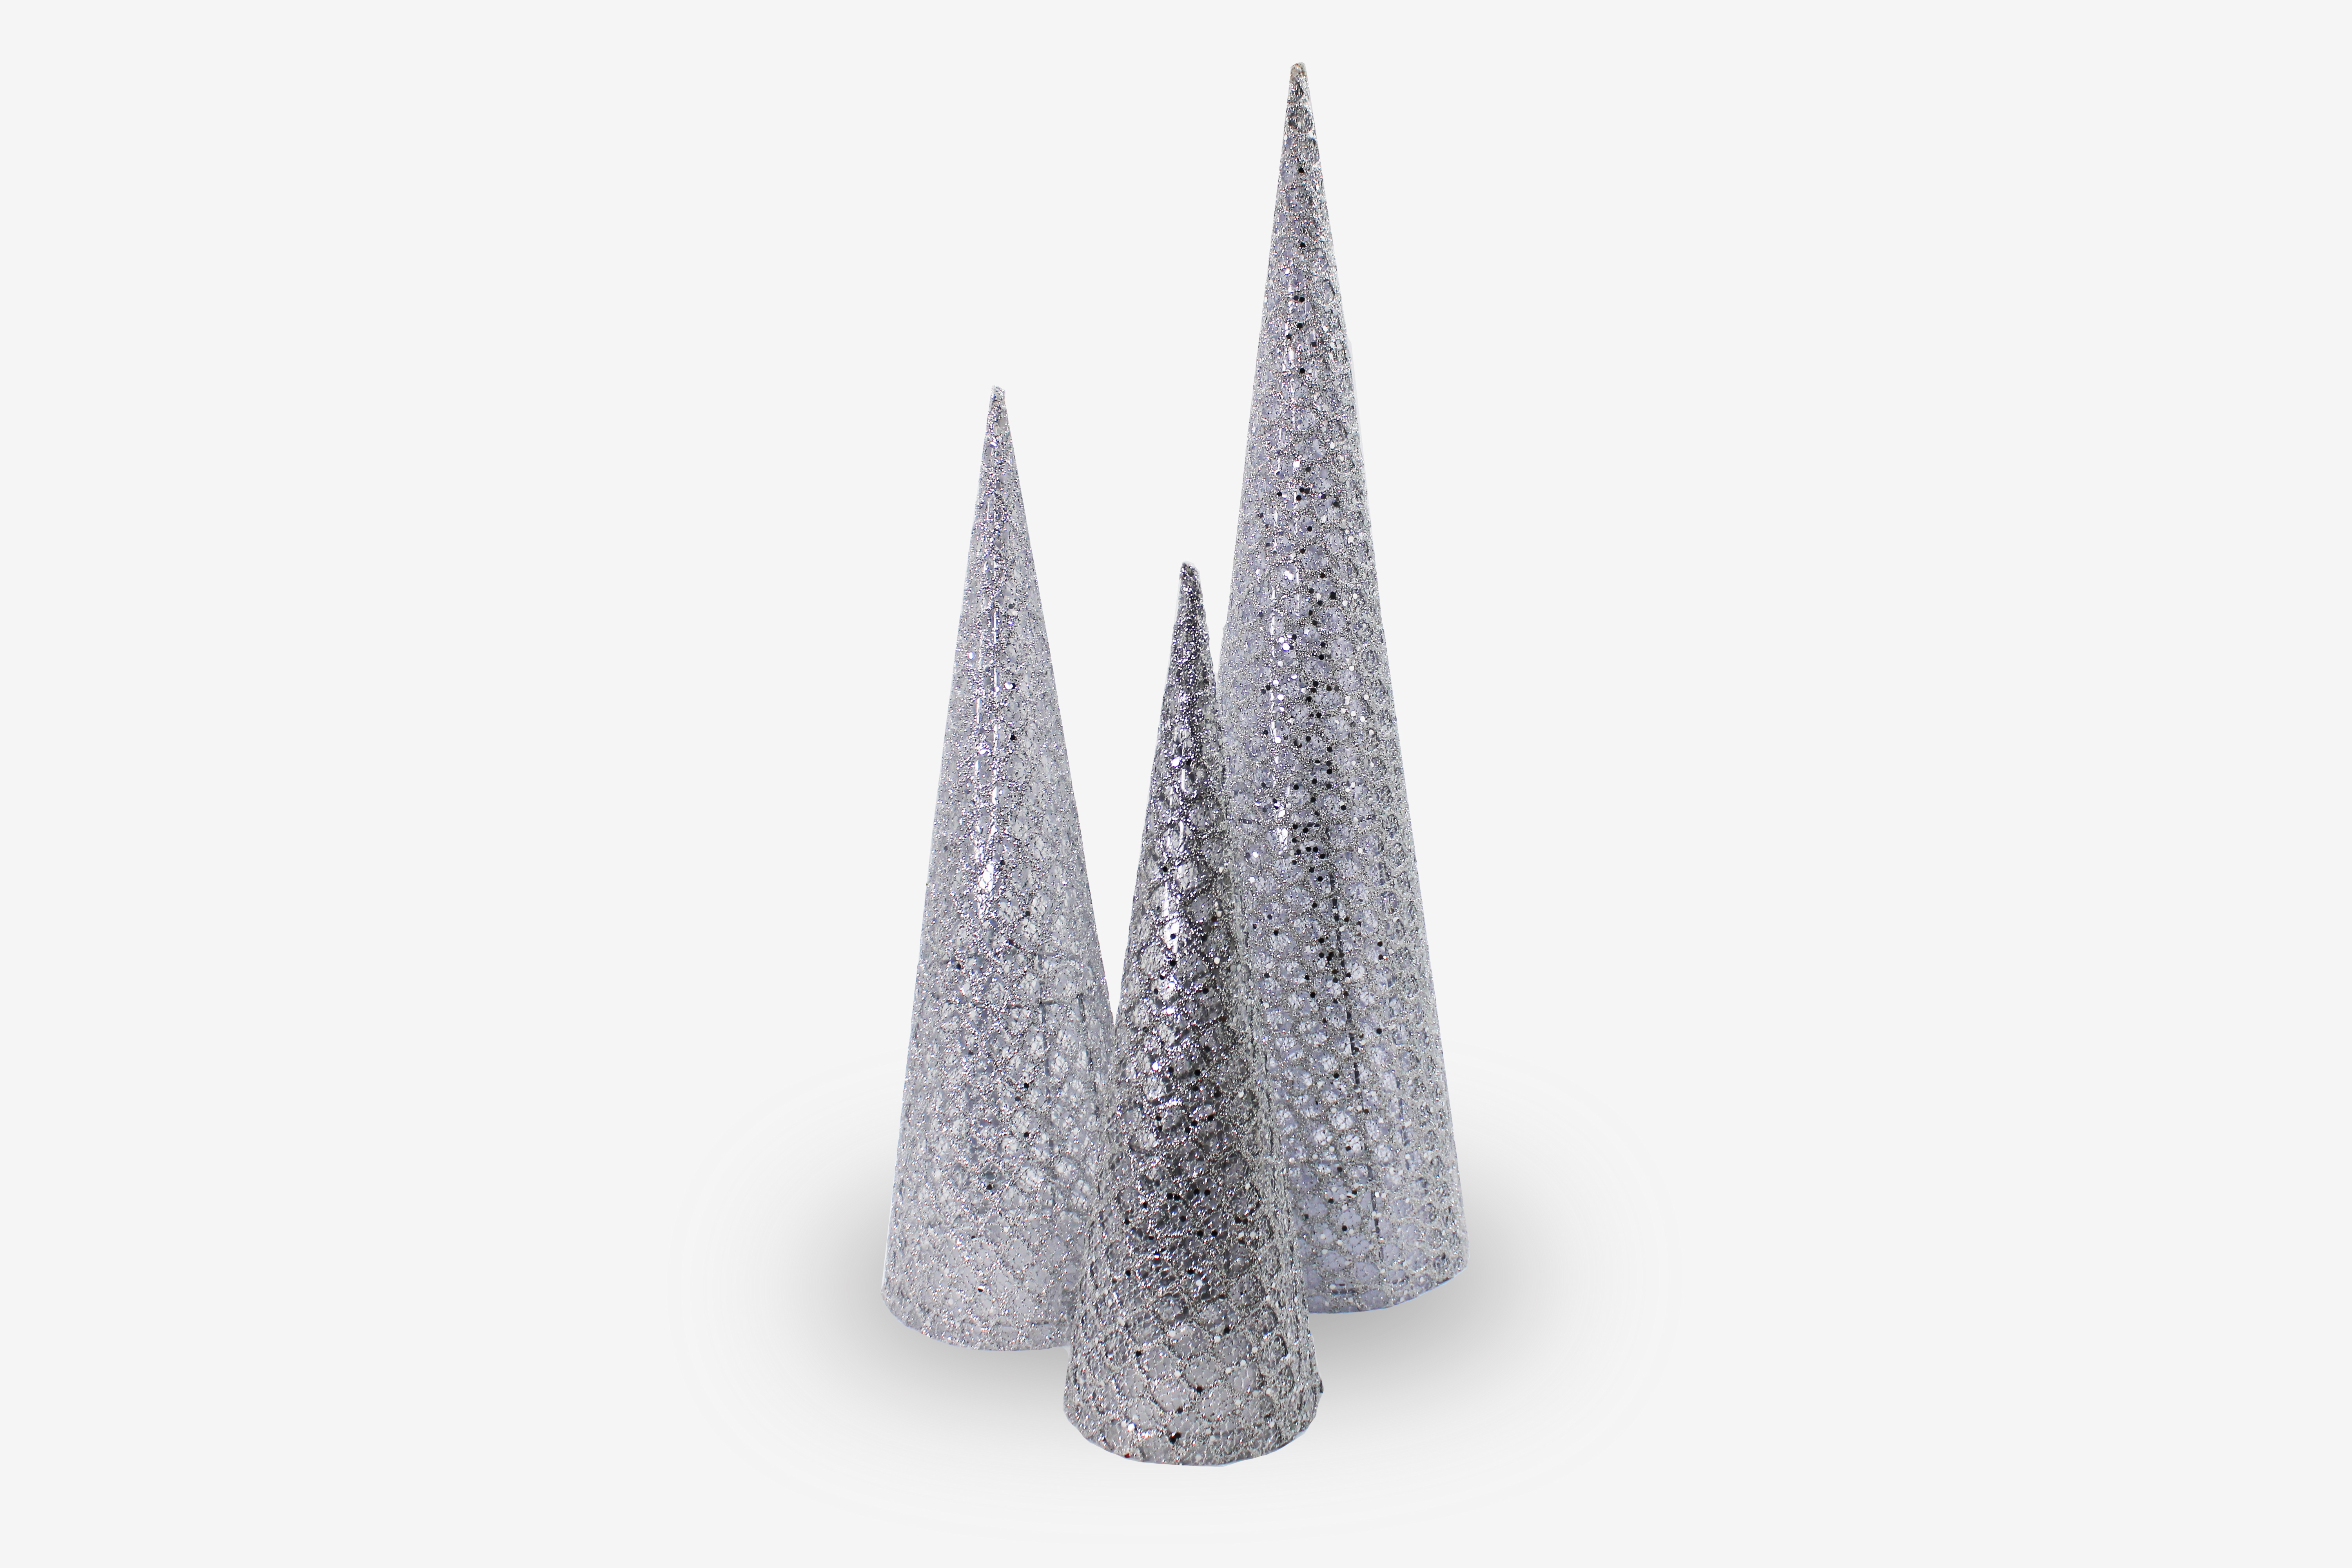 Silver Mesh Cone Tree 3 Pack